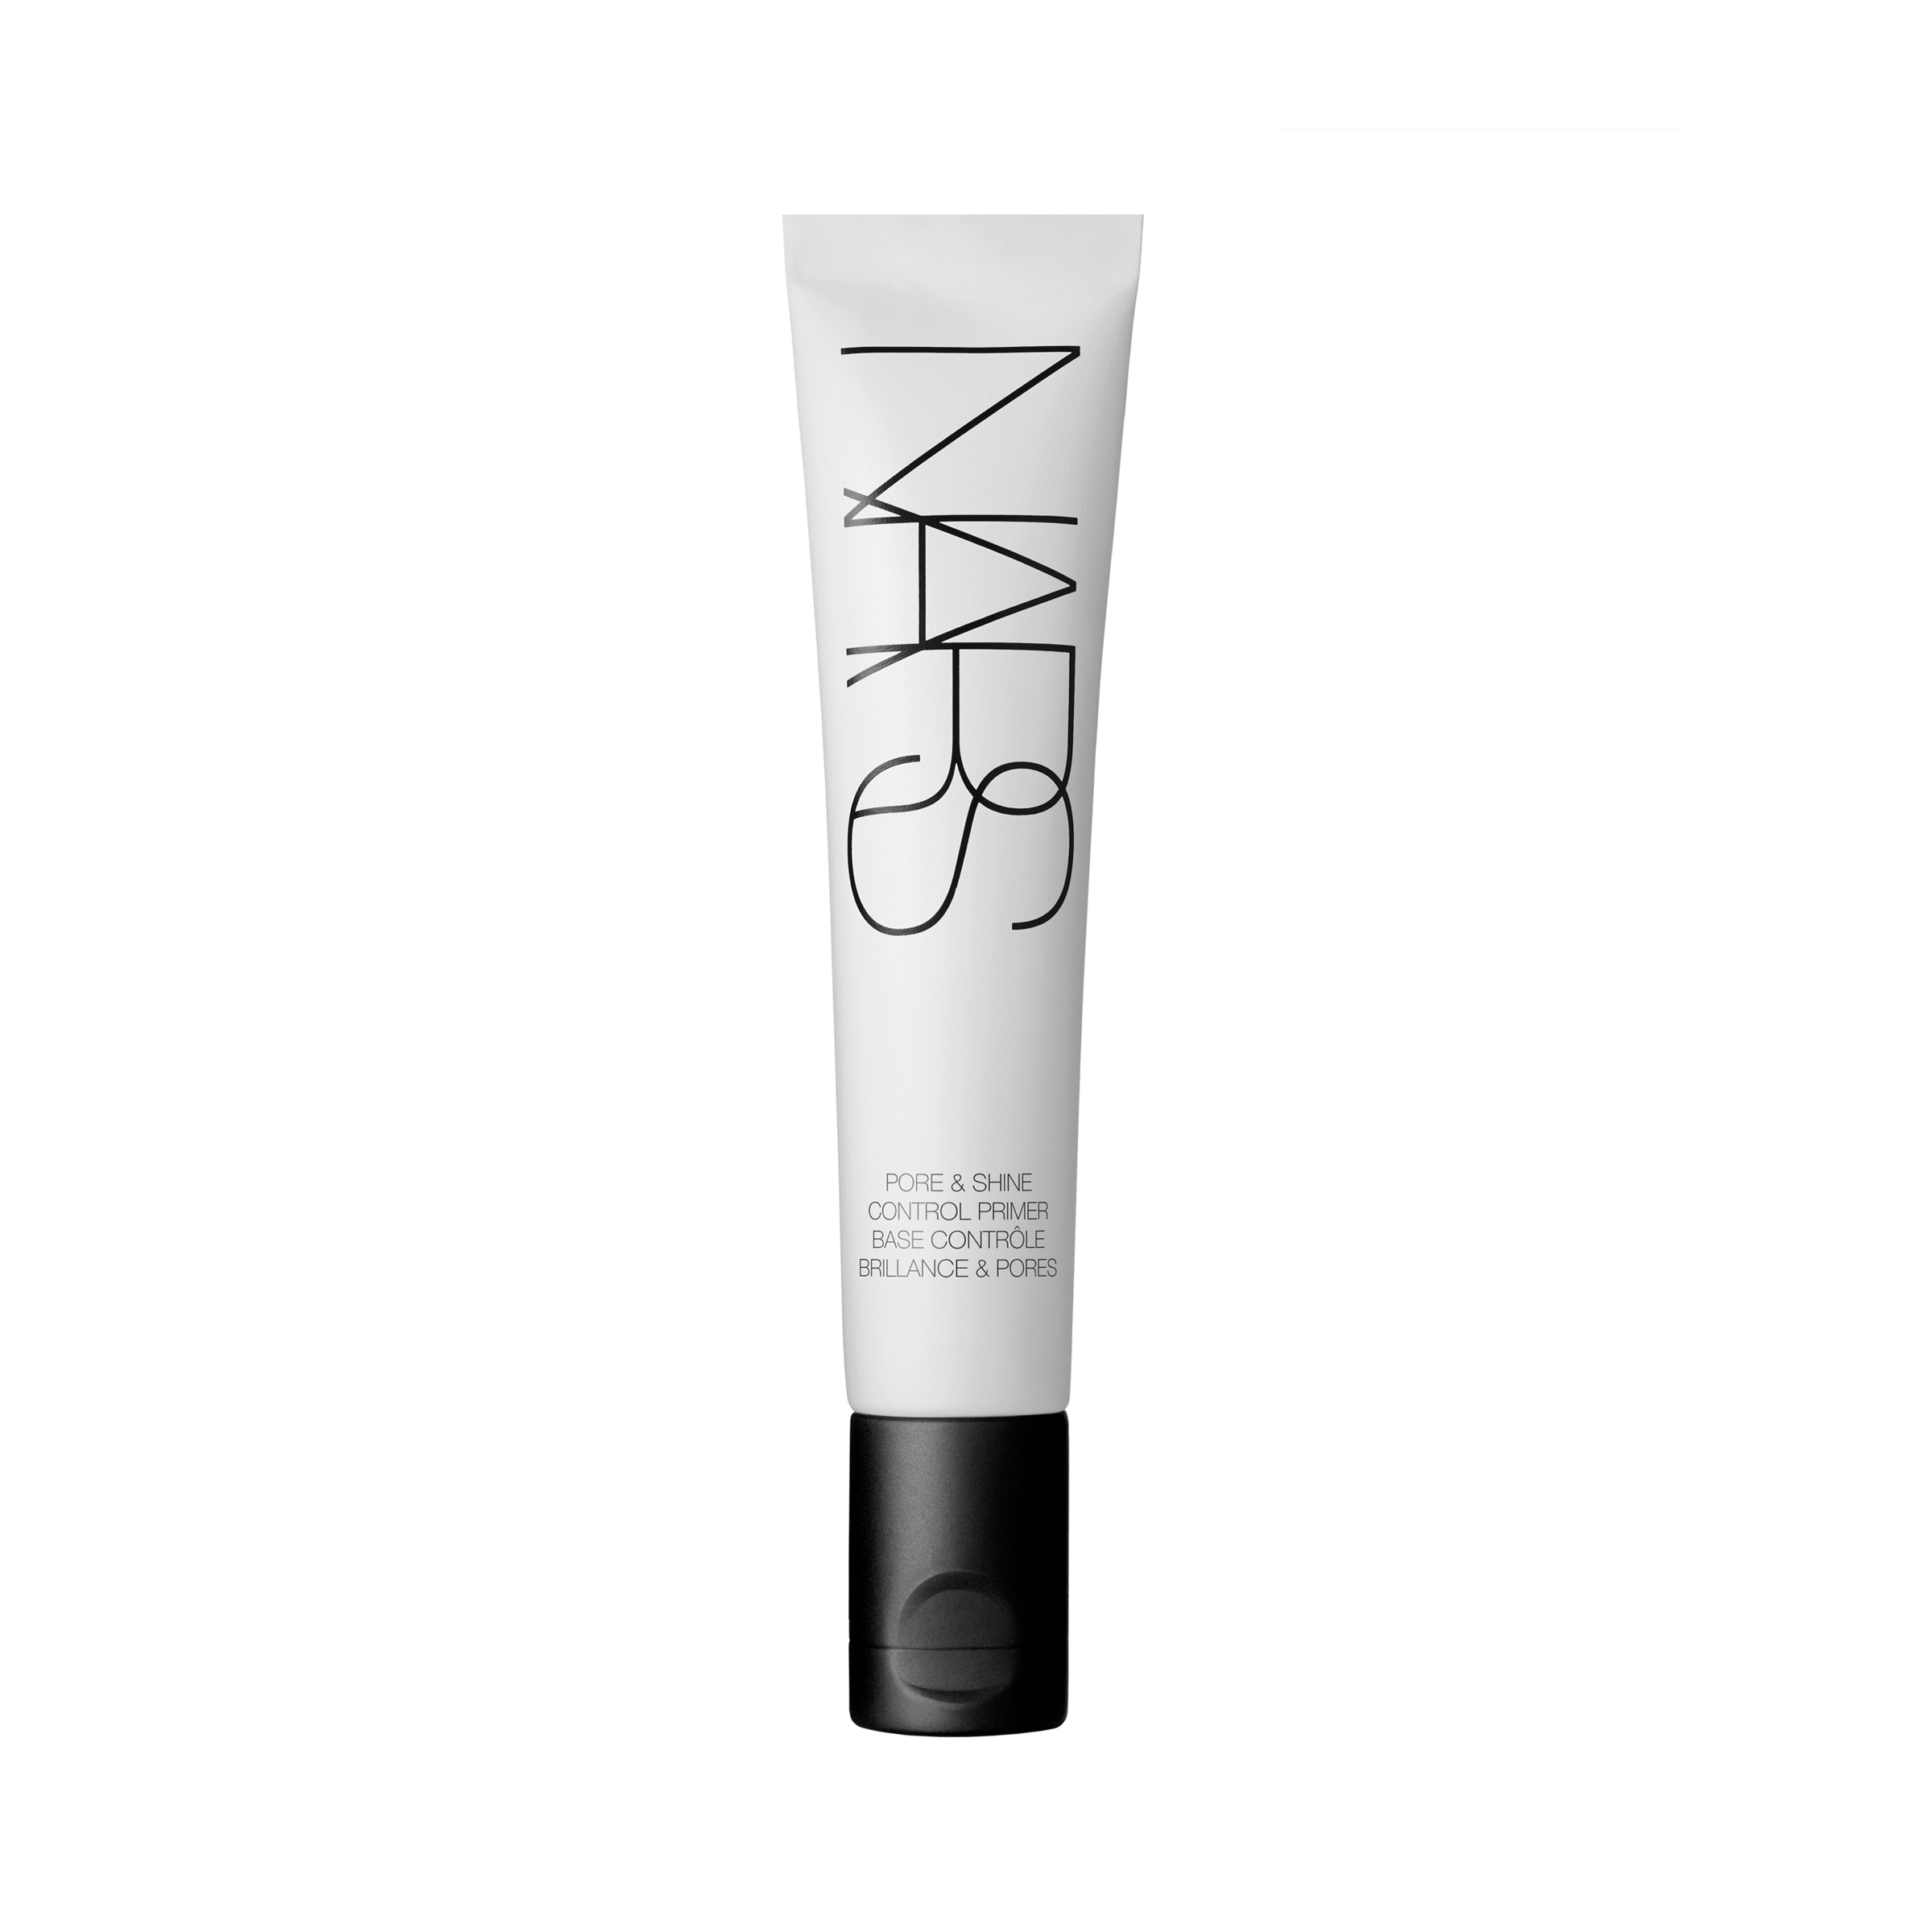 Pore & Shine Control Primer 30 ml